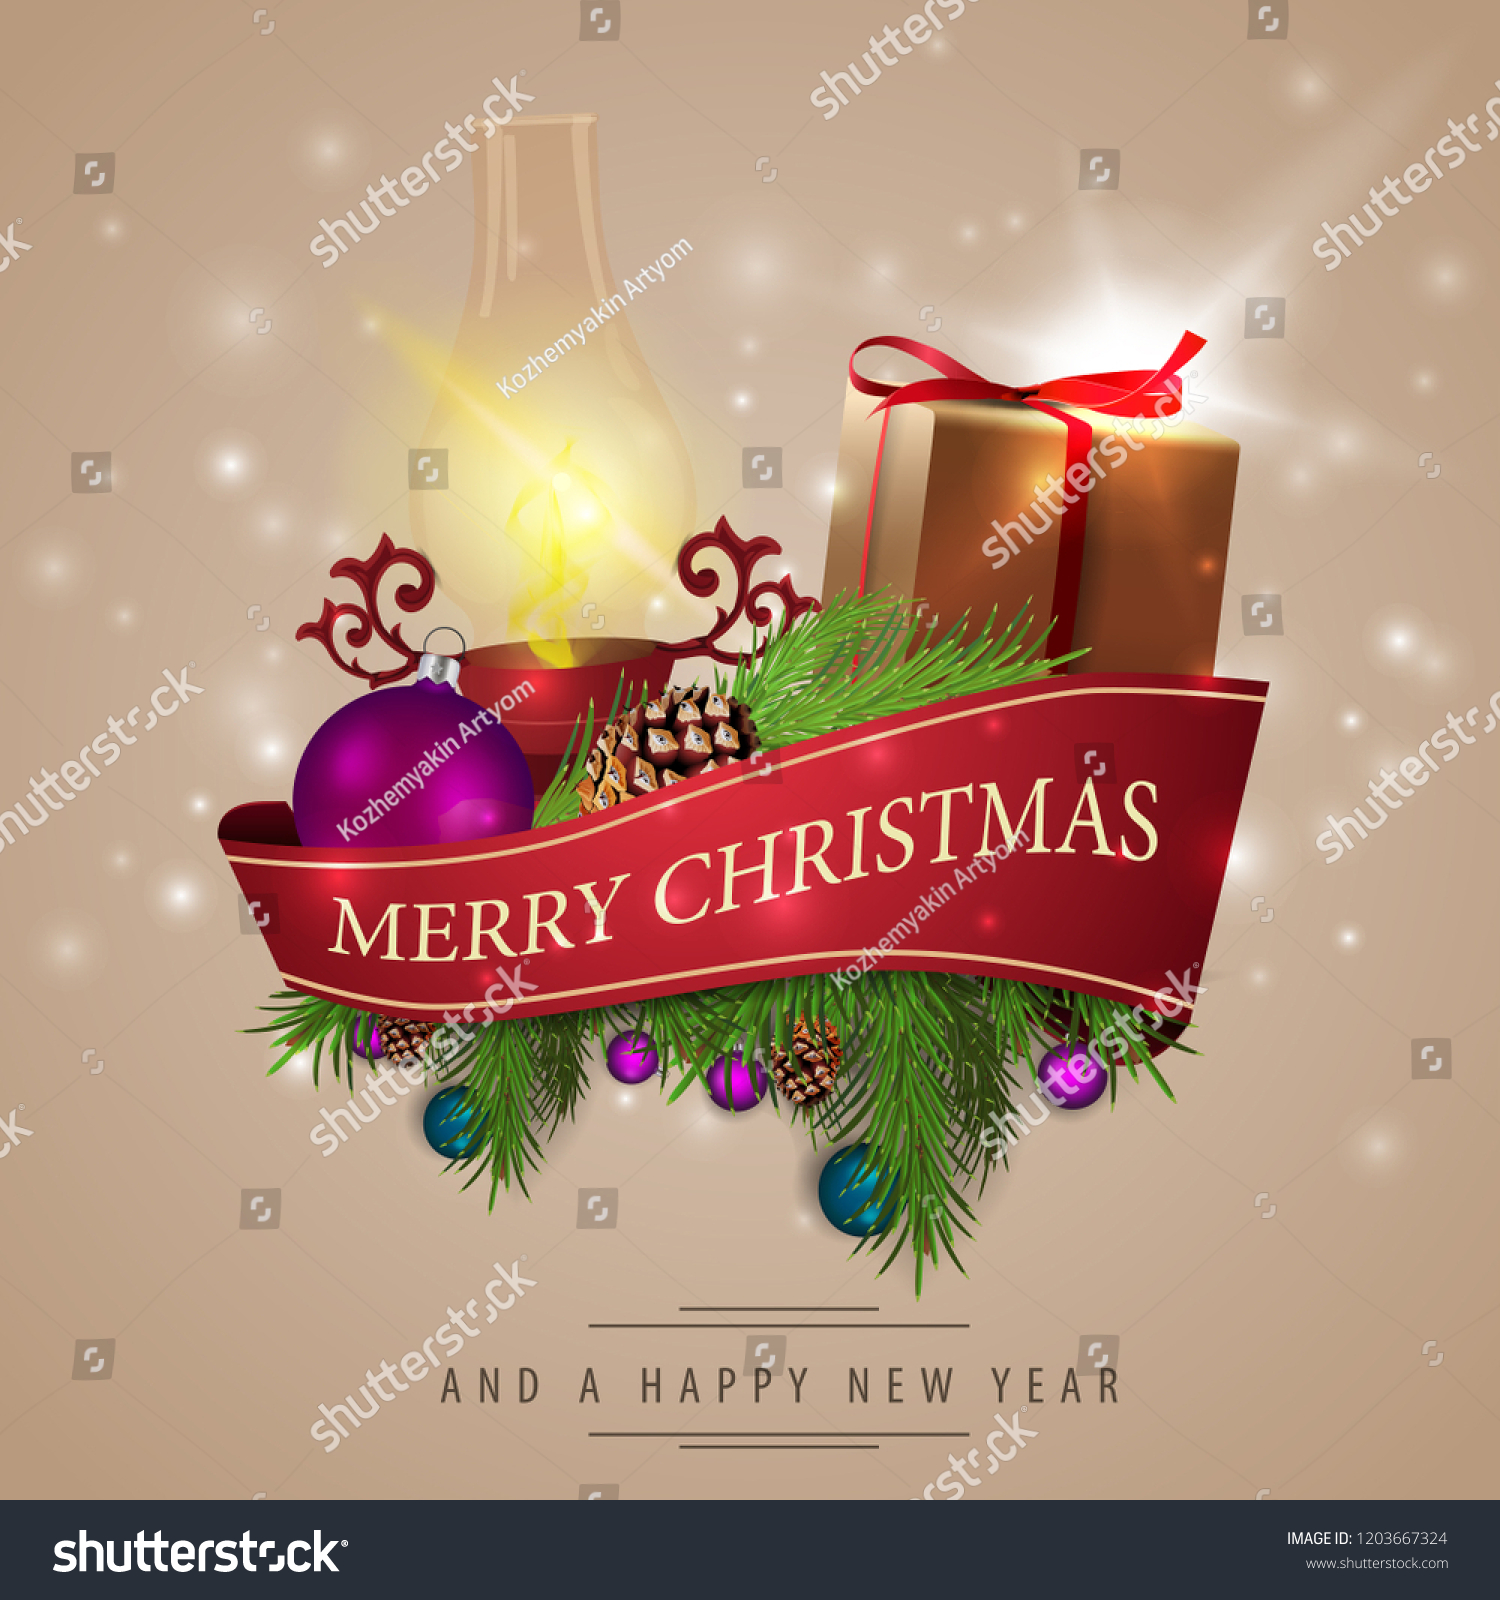 Christmas Card Red Ribbon Christmas Decorations Stock Vector